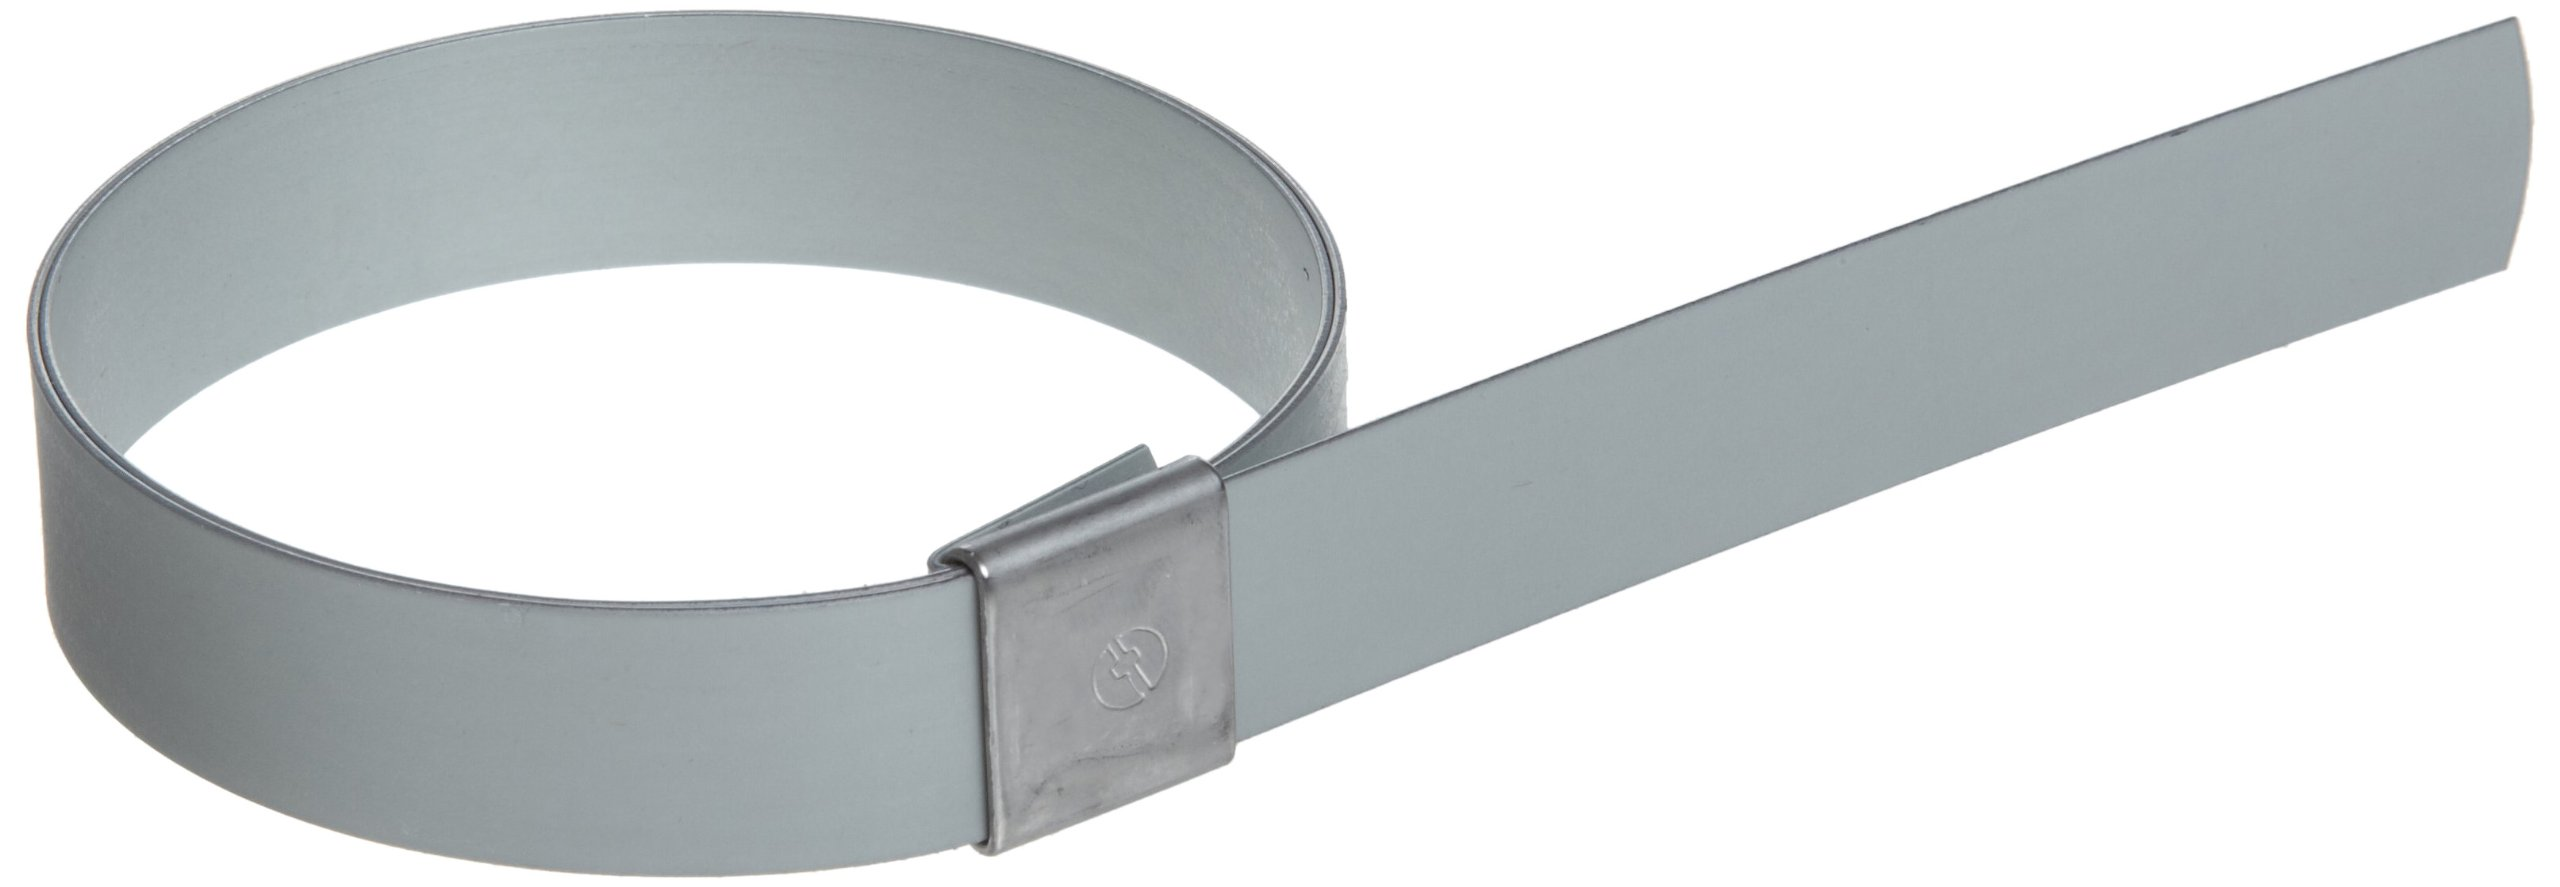 BAND-IT CP1099 5/8'' Wide x 0.025'' Thick 2-1/2'' Diameter, Galvanized Carbon Steel Center Punch Clamp (50 Per Box)